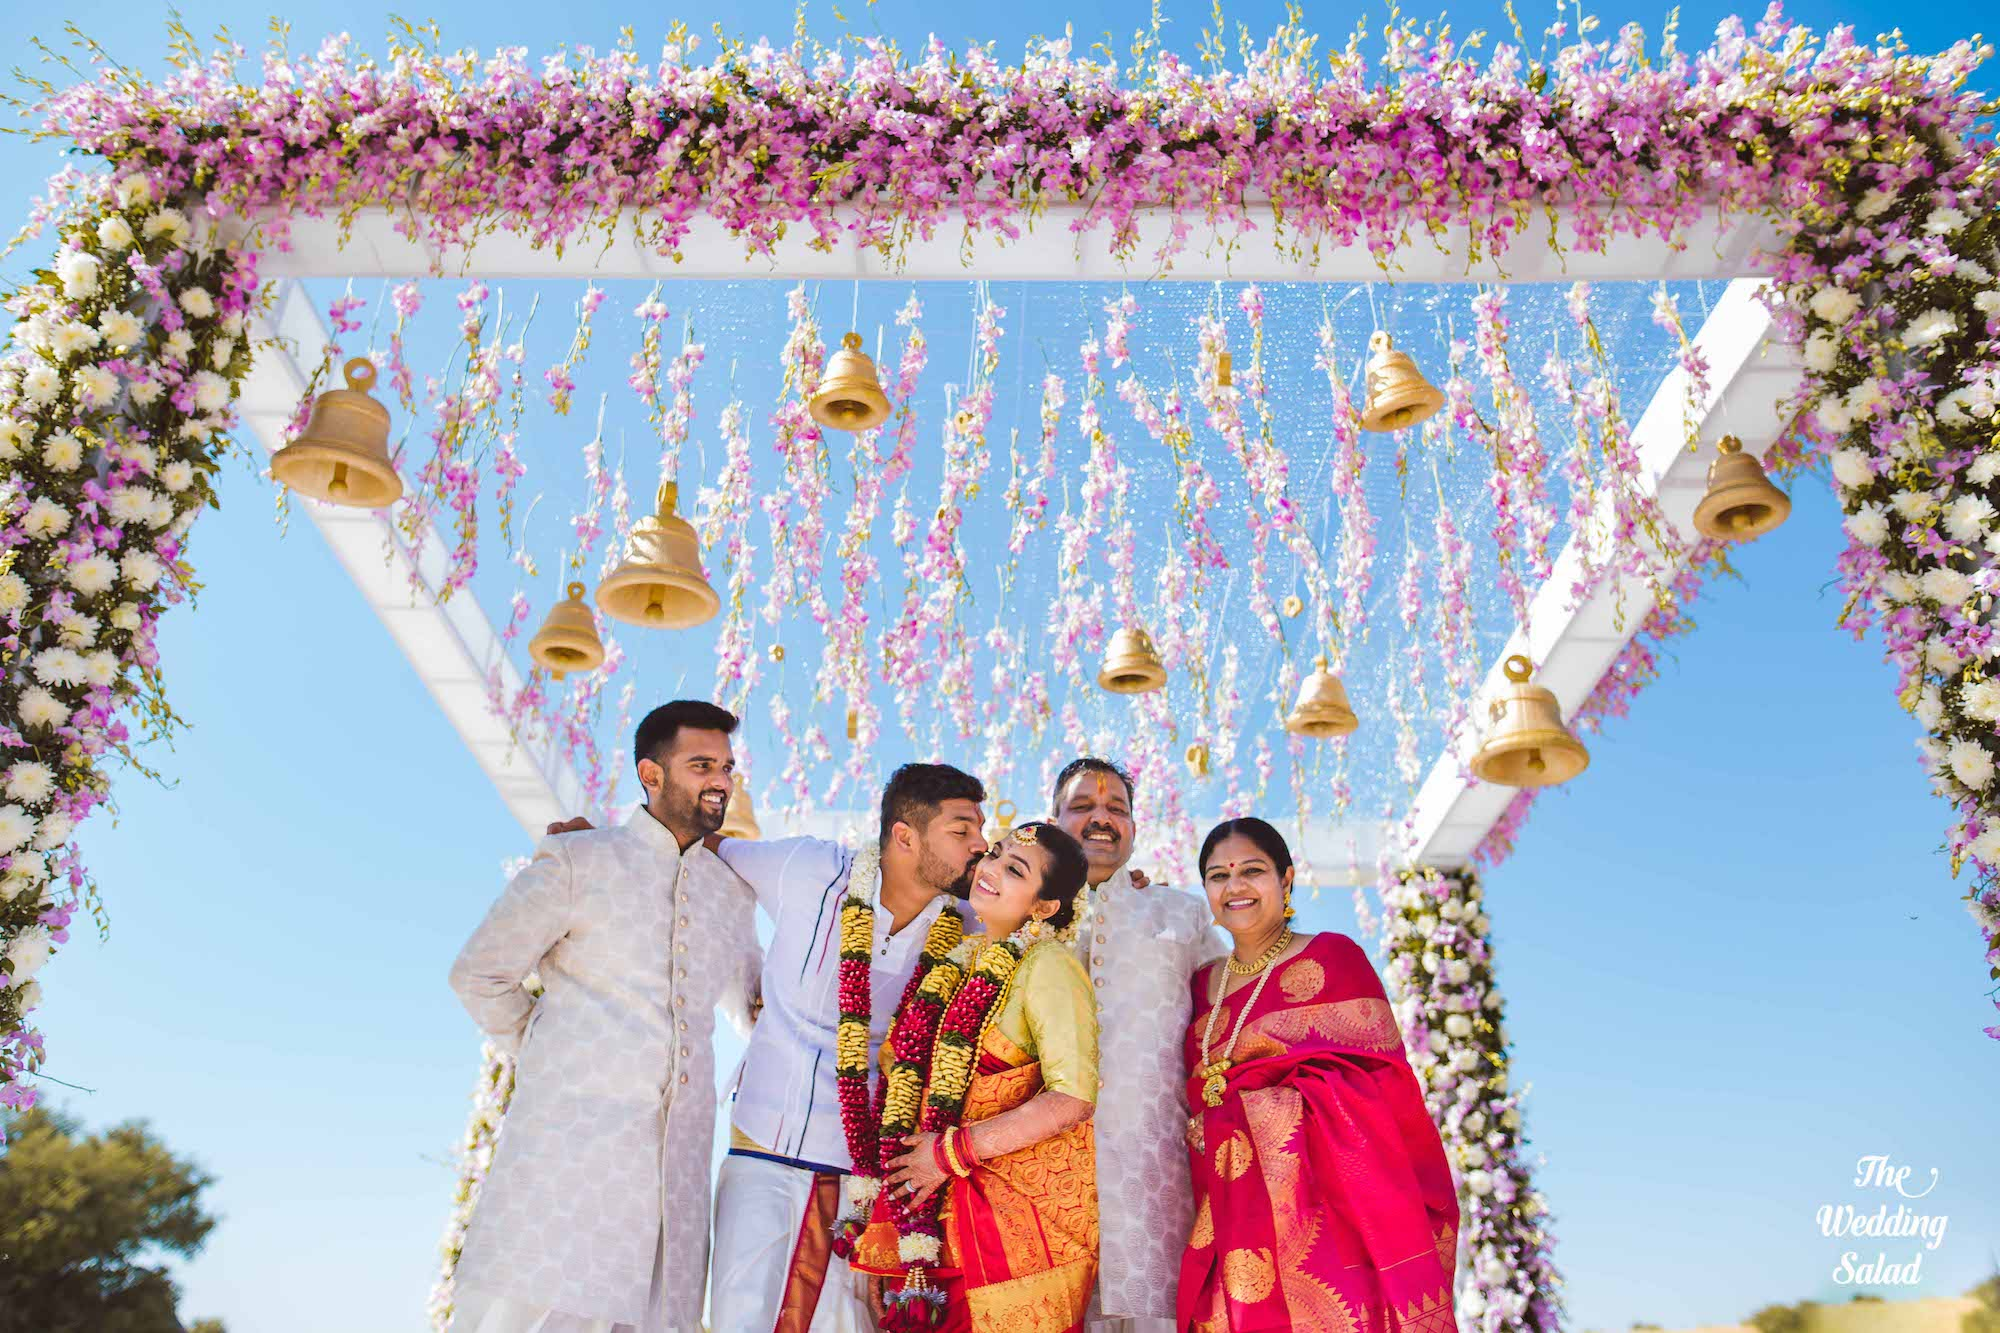 South Indian wedding Mandap decorated with Orchids & Temple Bells